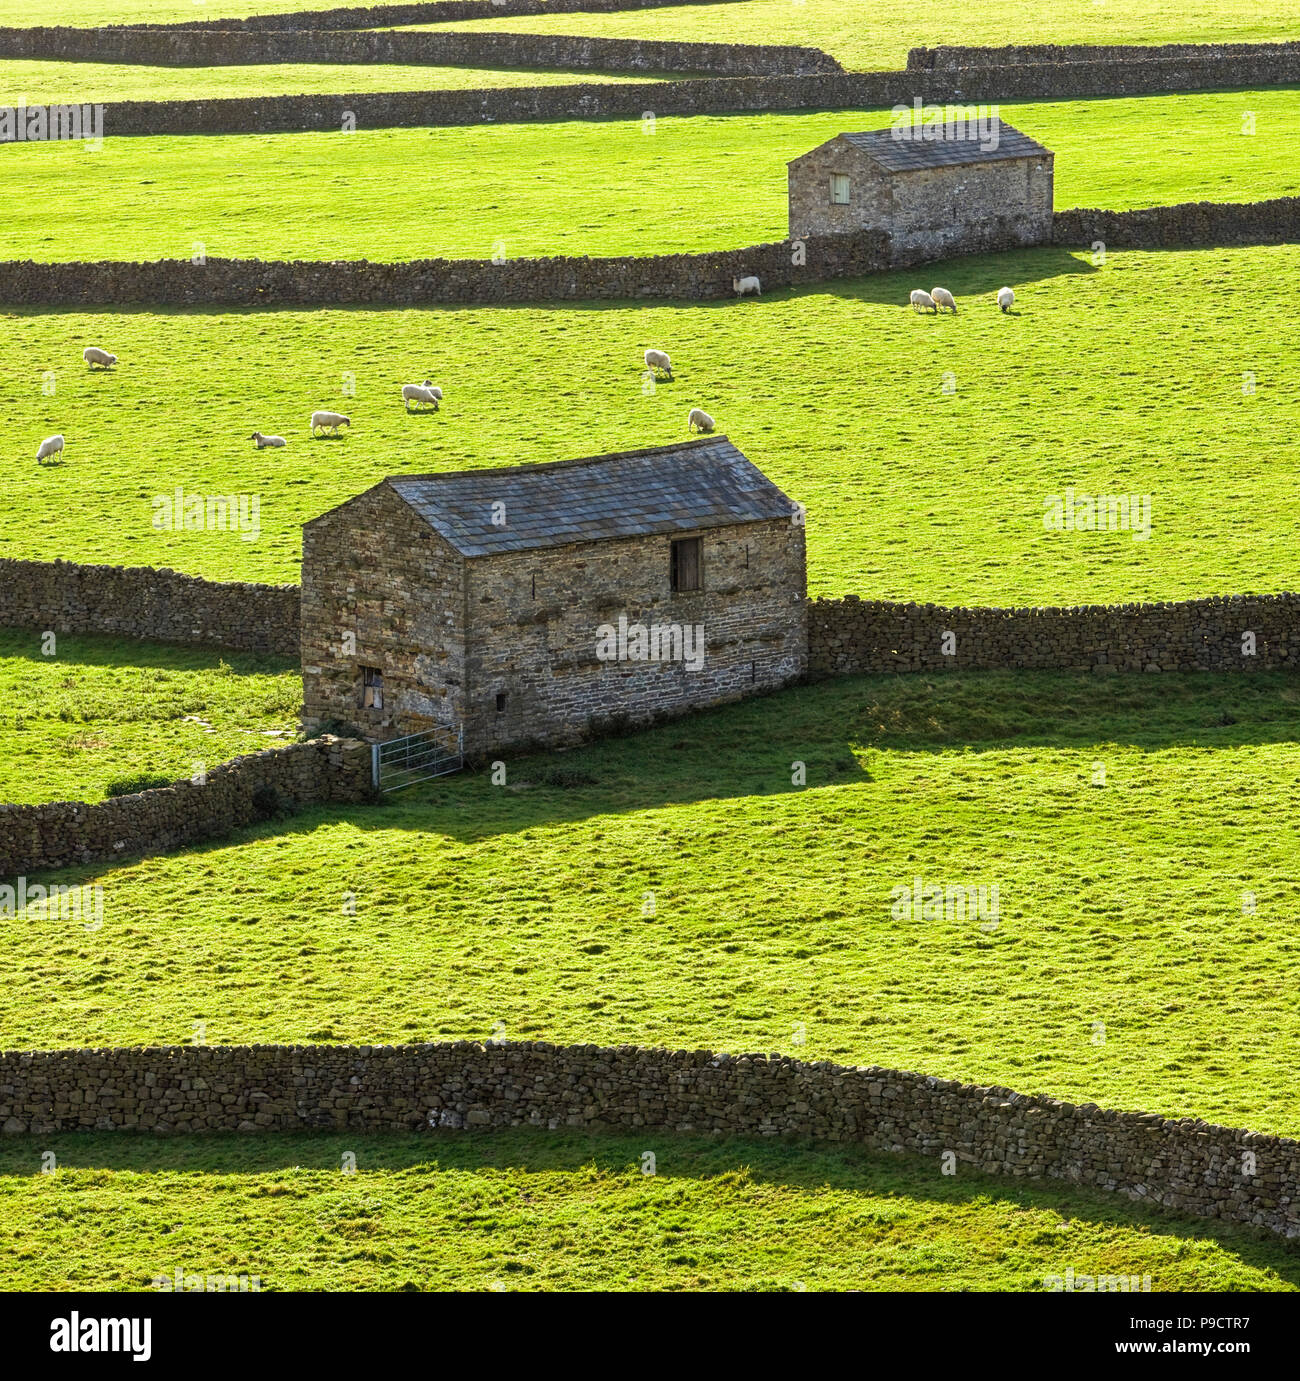 Stone barns and dry stone walls at Gunnerside in the Yorkshire Dales National Park, England, UK - Stock Image